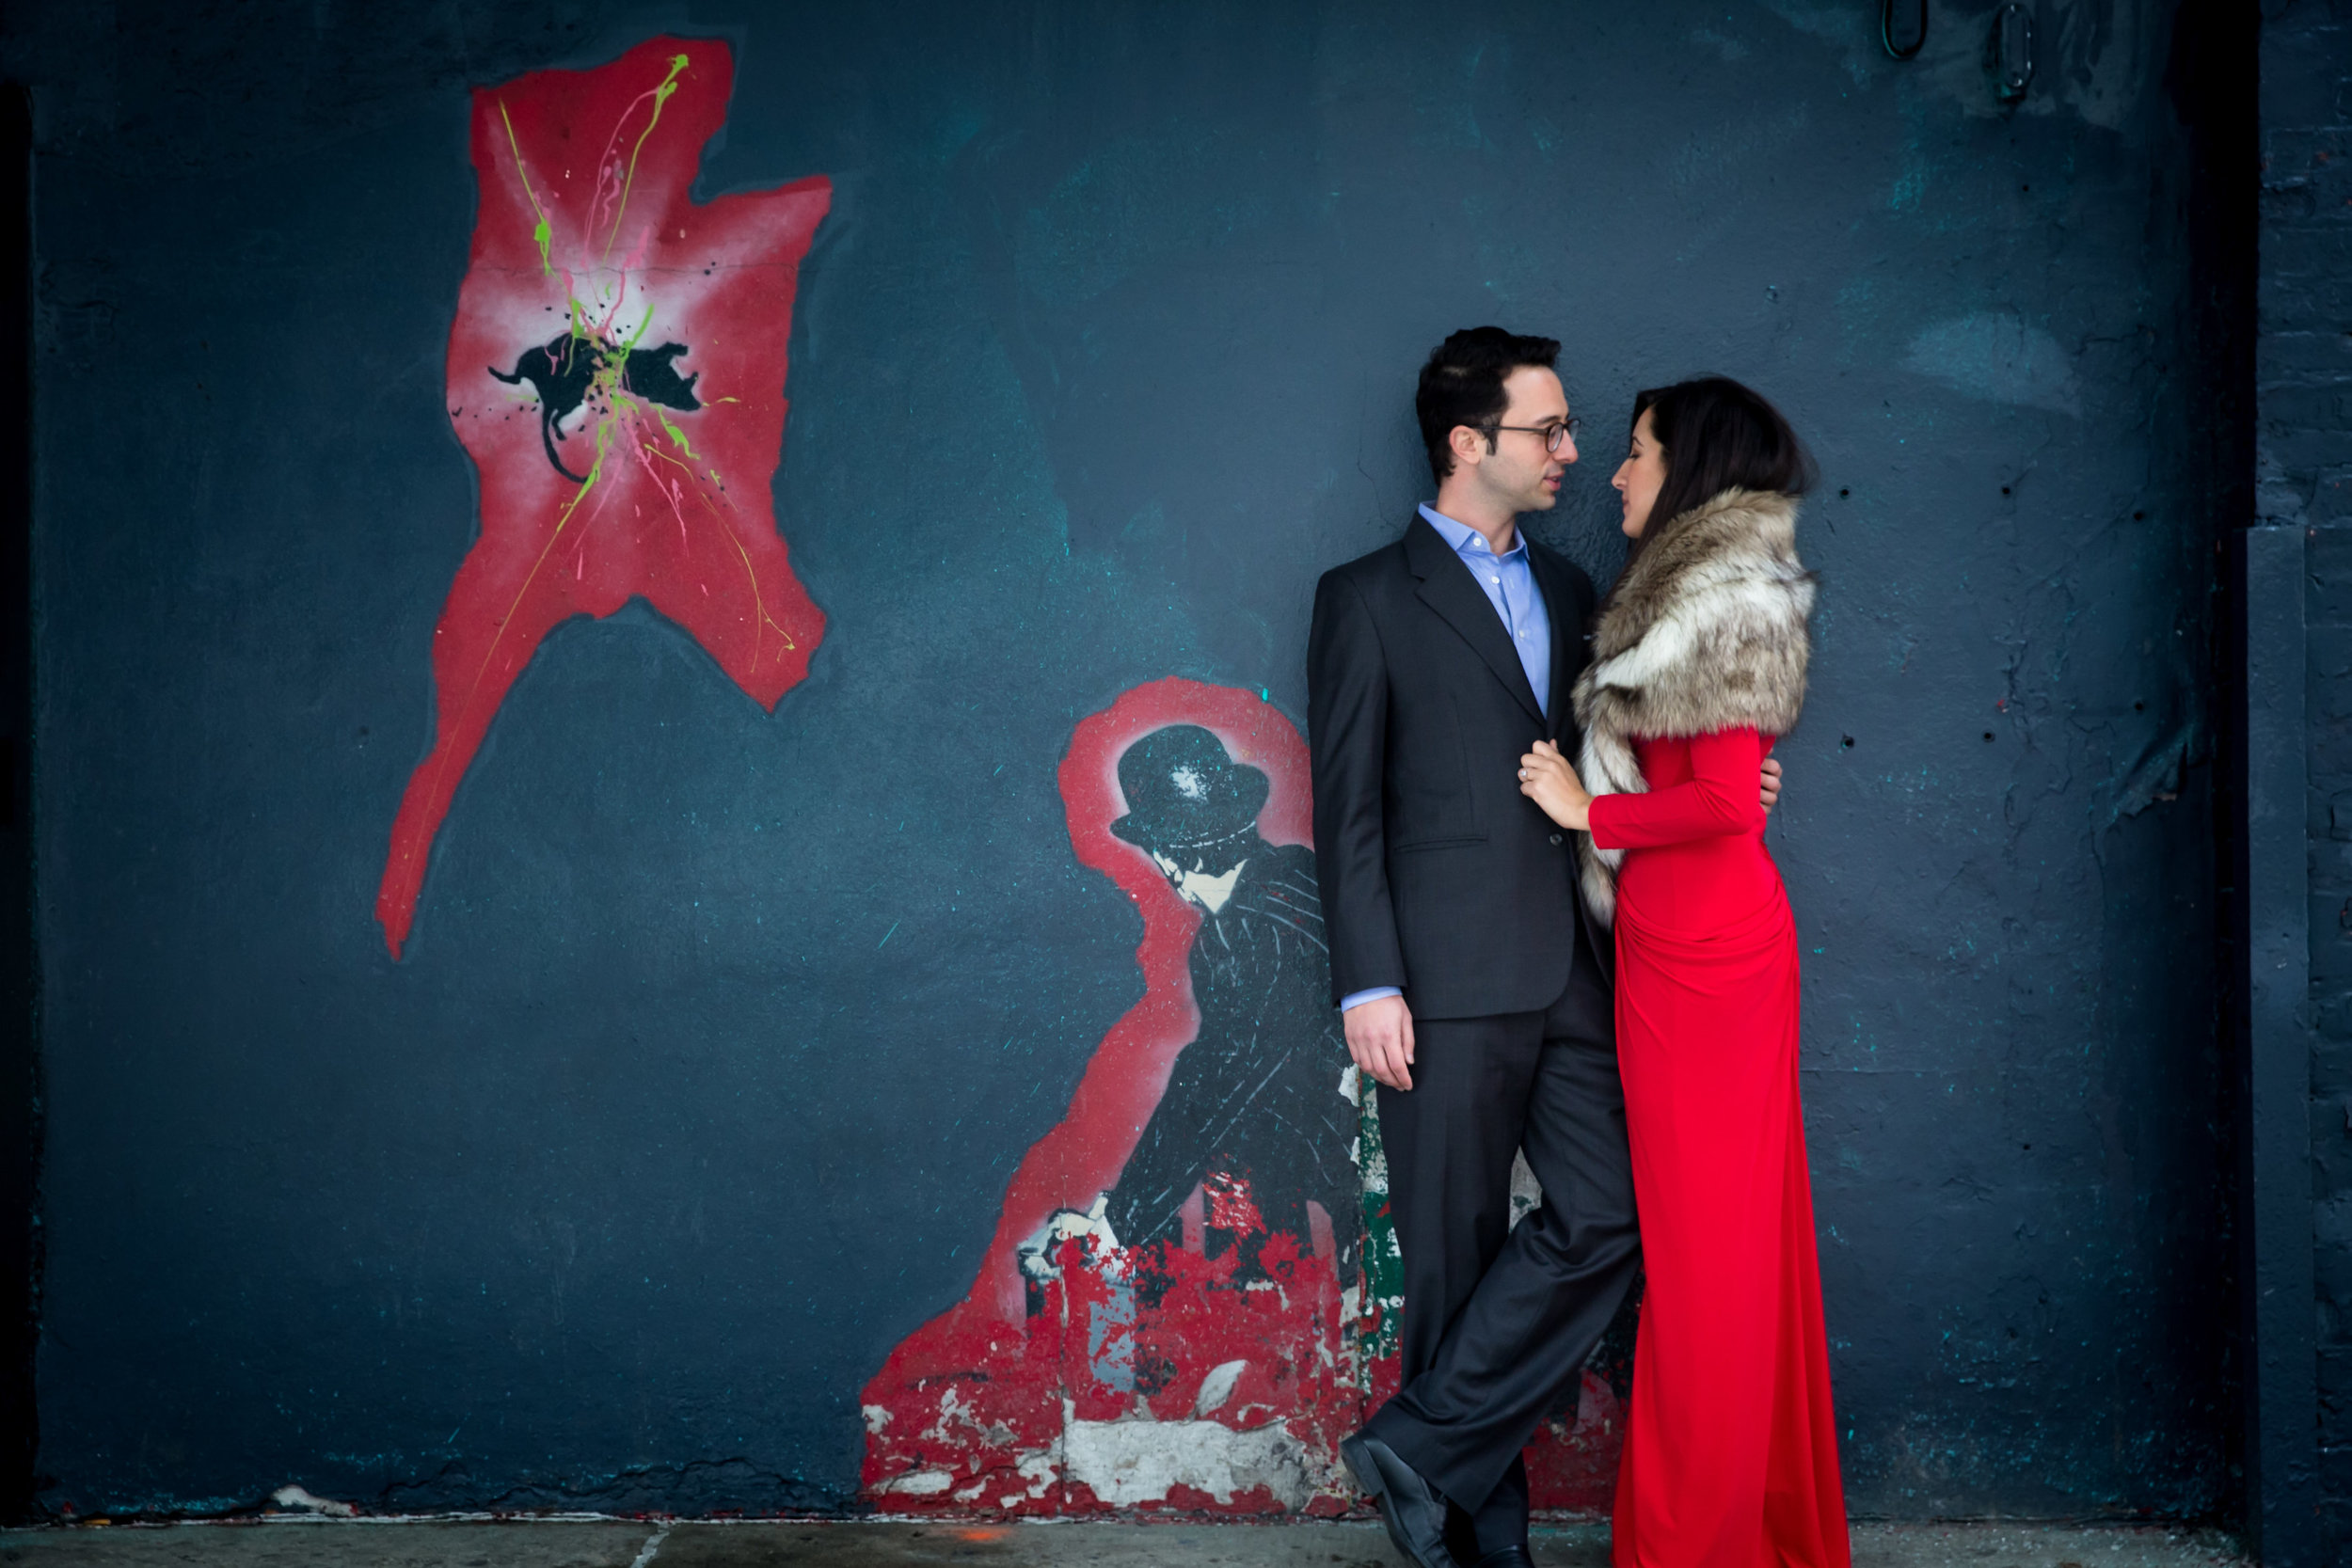 engagement-shoot-meat-packing-district-nyc-101.jpg